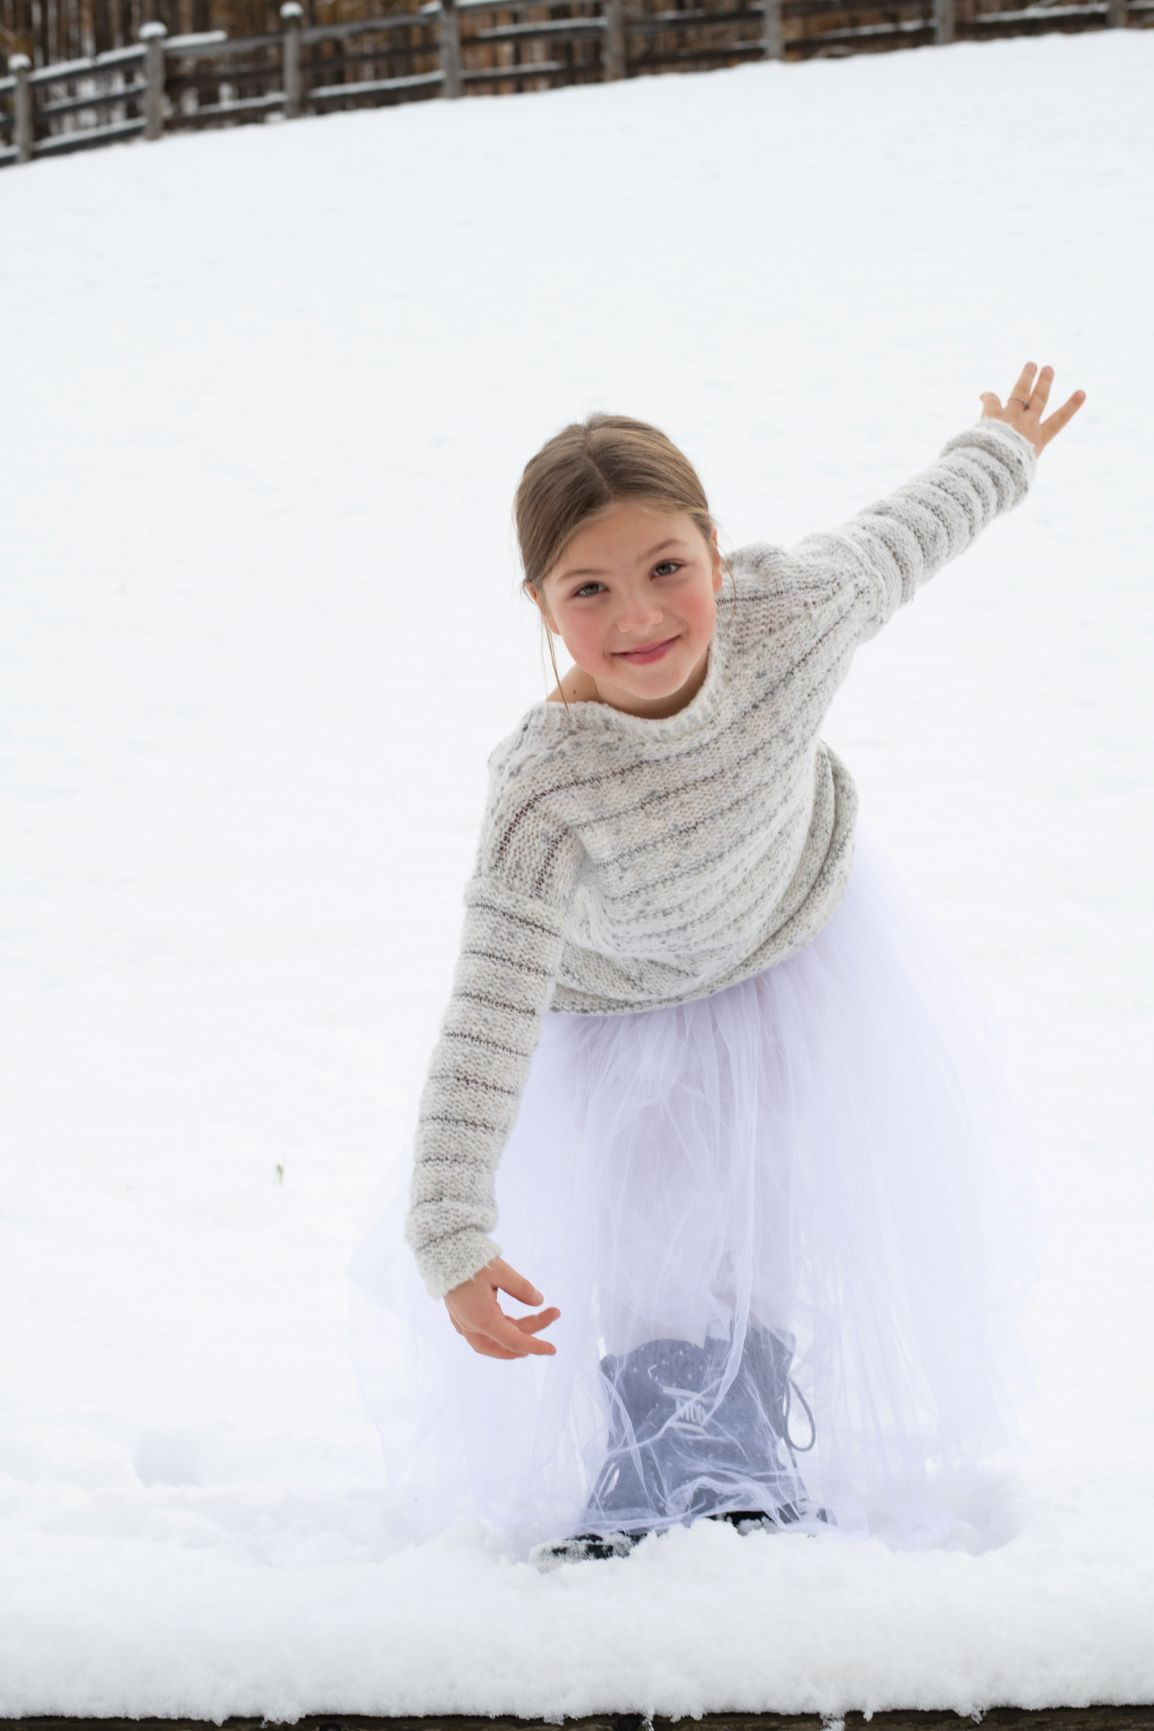 Ballerina - Révérénce in Snow 2 - Photo © Daniela Brugger